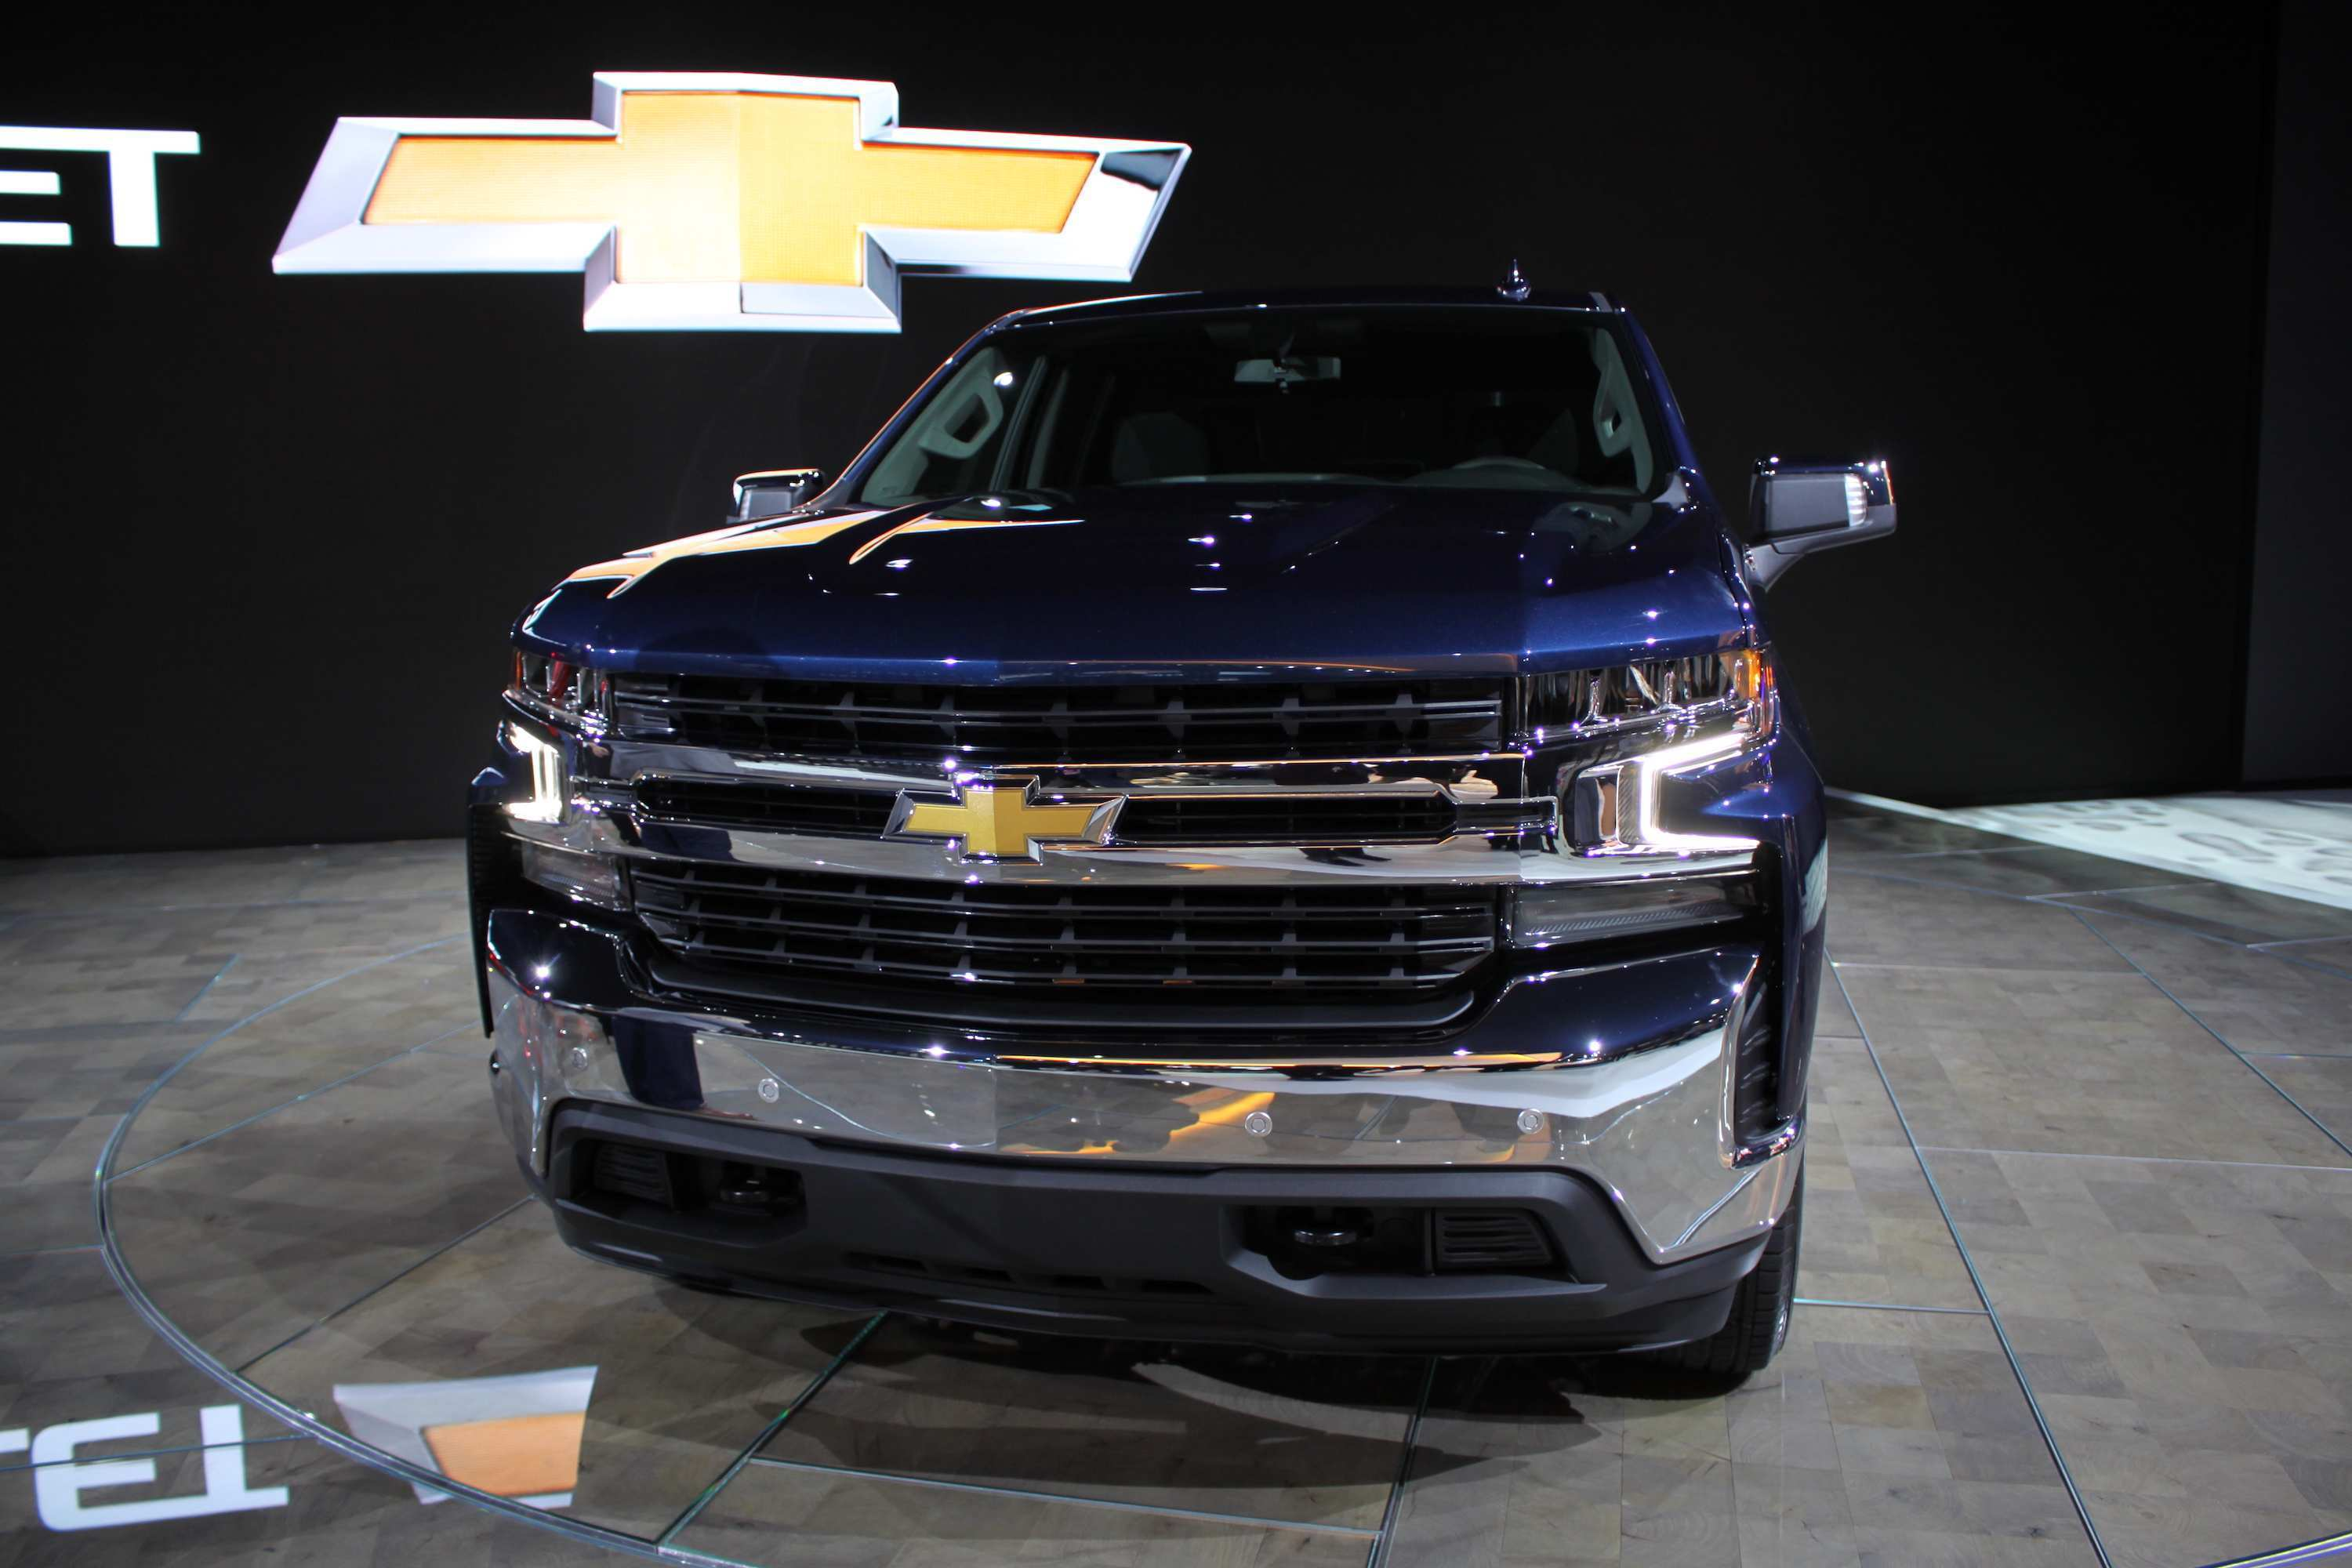 62 Gallery of The Chevrolet Pickup 2019 Diesel Engine Review with The Chevrolet Pickup 2019 Diesel Engine